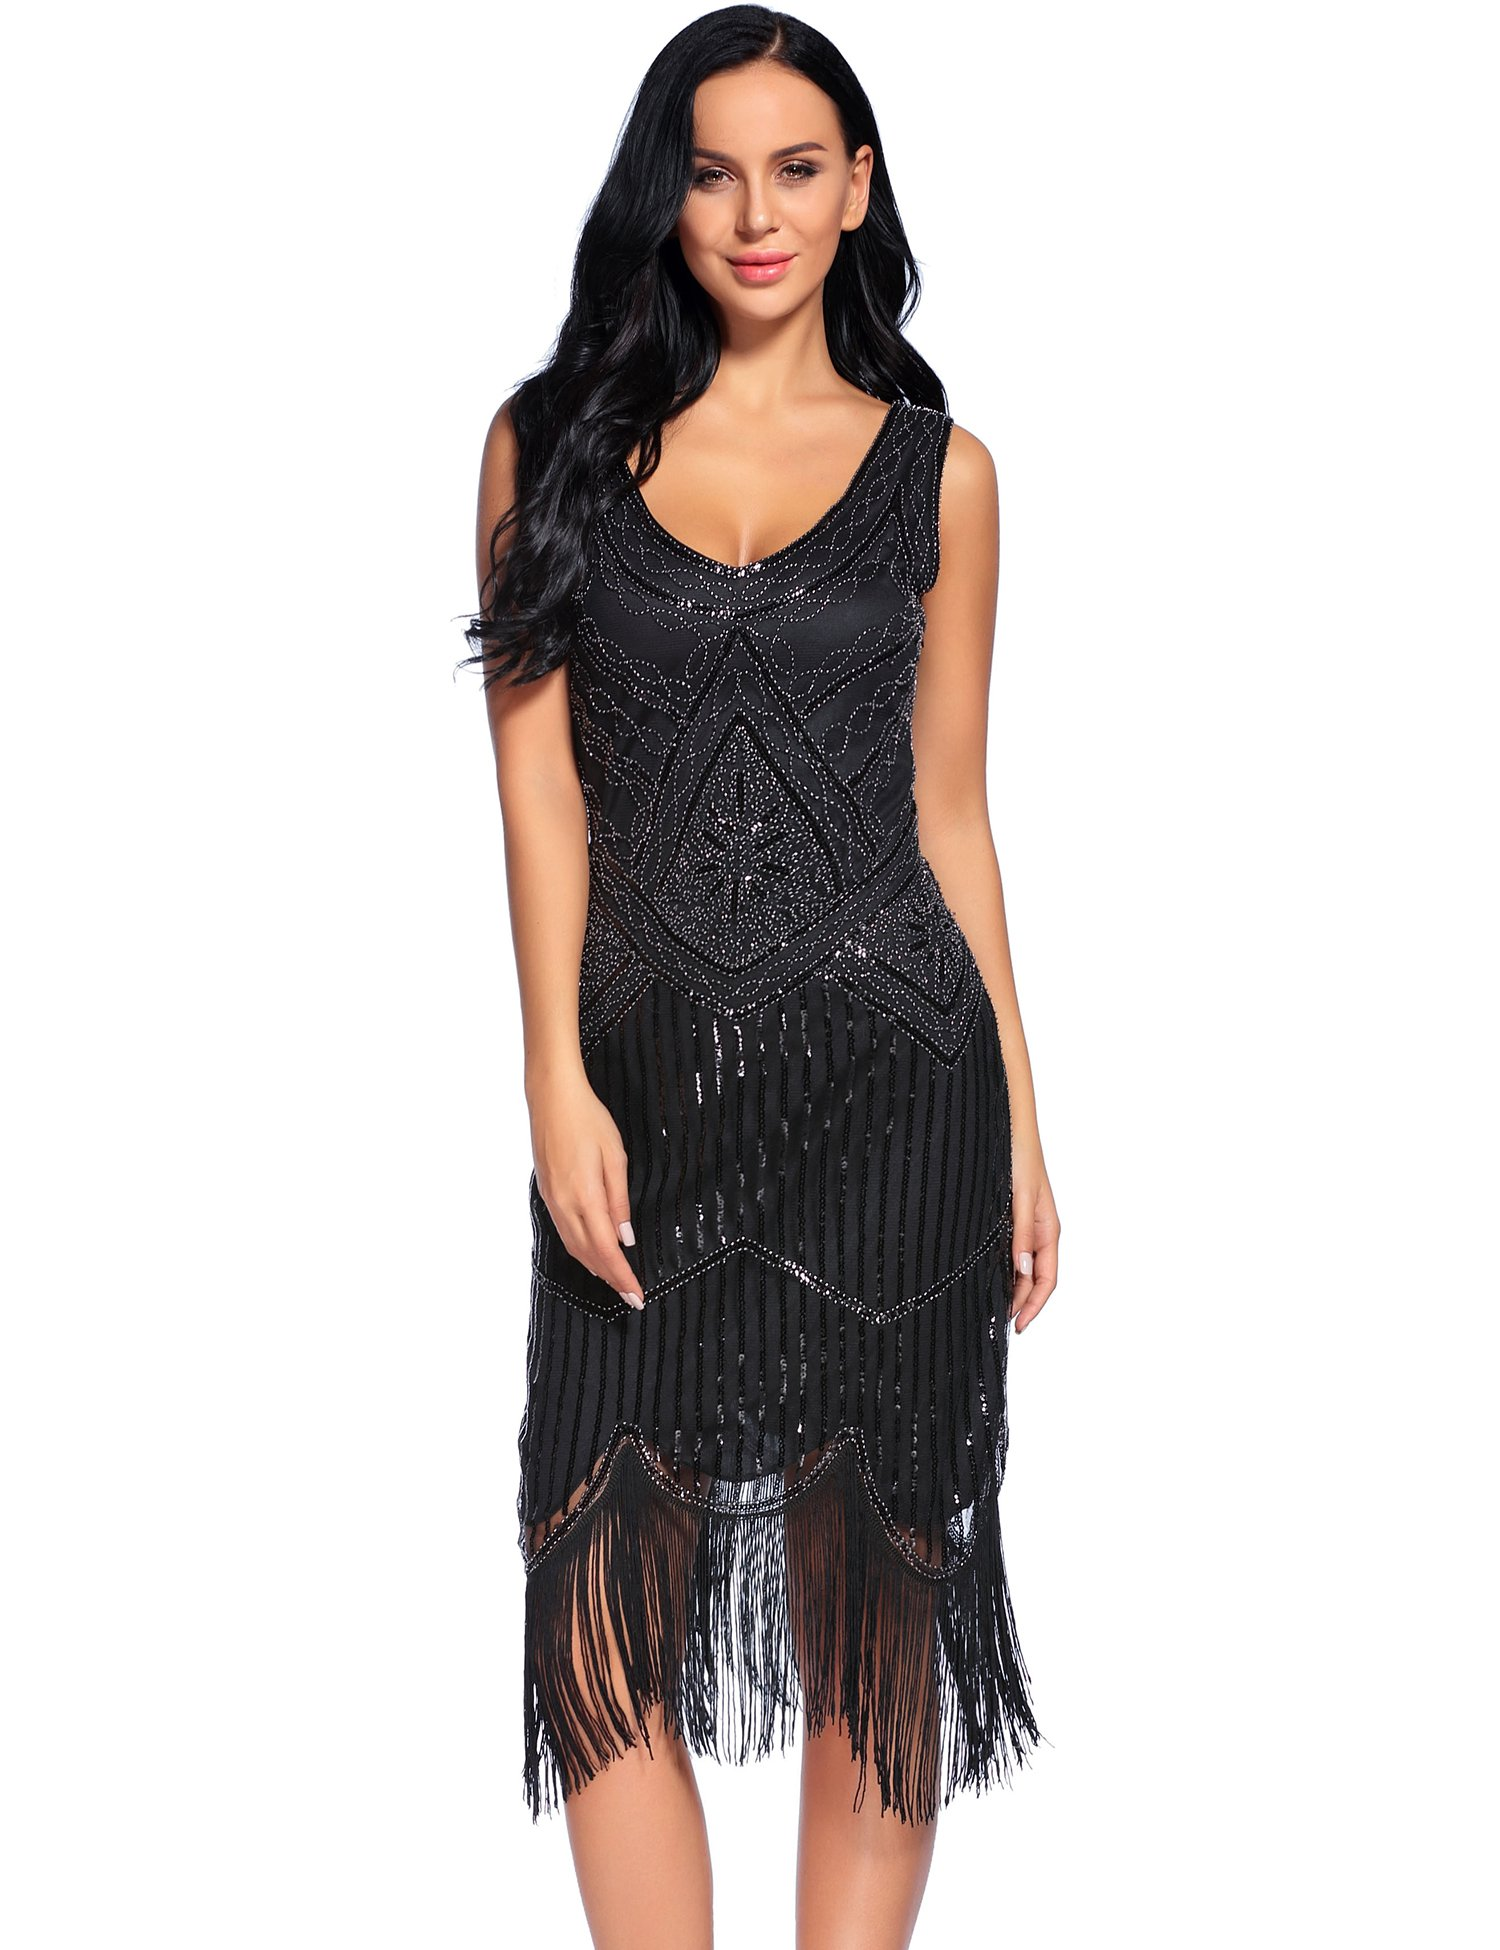 Flapper Girl Women's Vintage 1920s Sequin Beaded Tassels Hem Flapper Dress (S, Black)